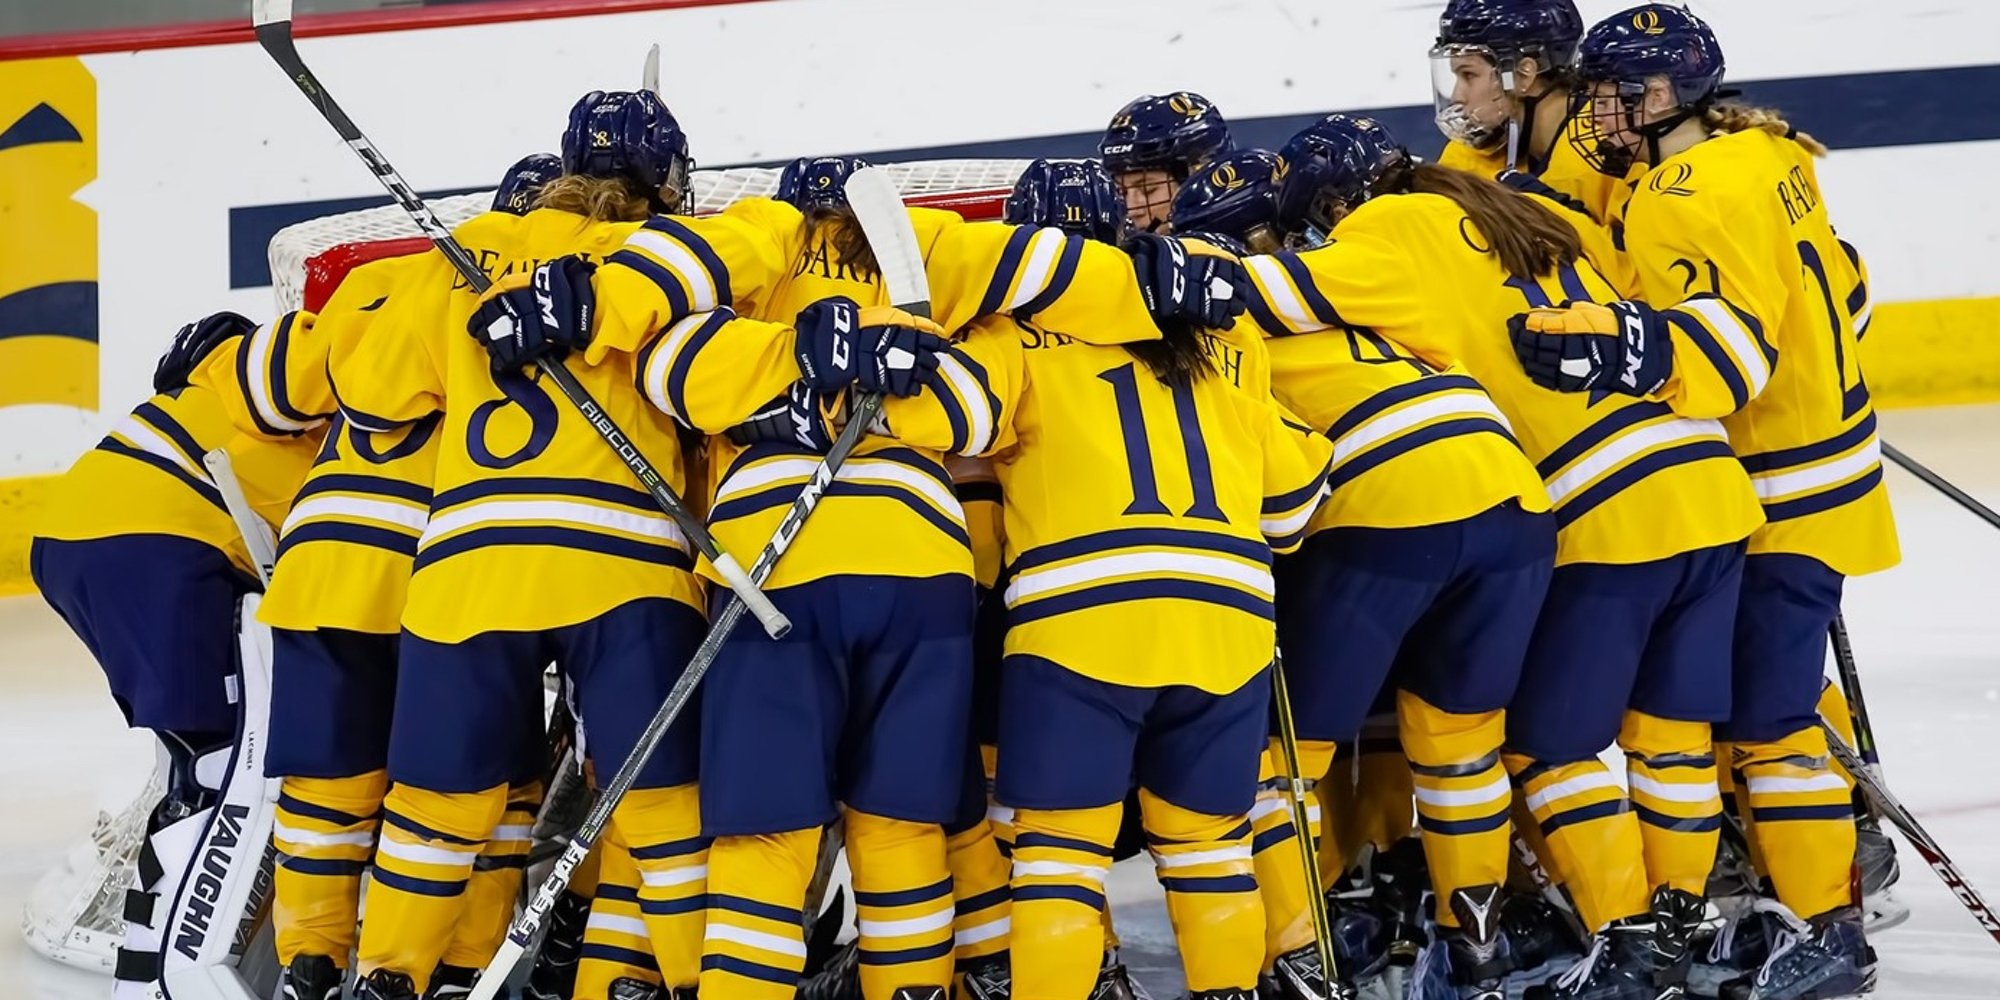 NCAA Women's Hockey: What to Watch, Week 10